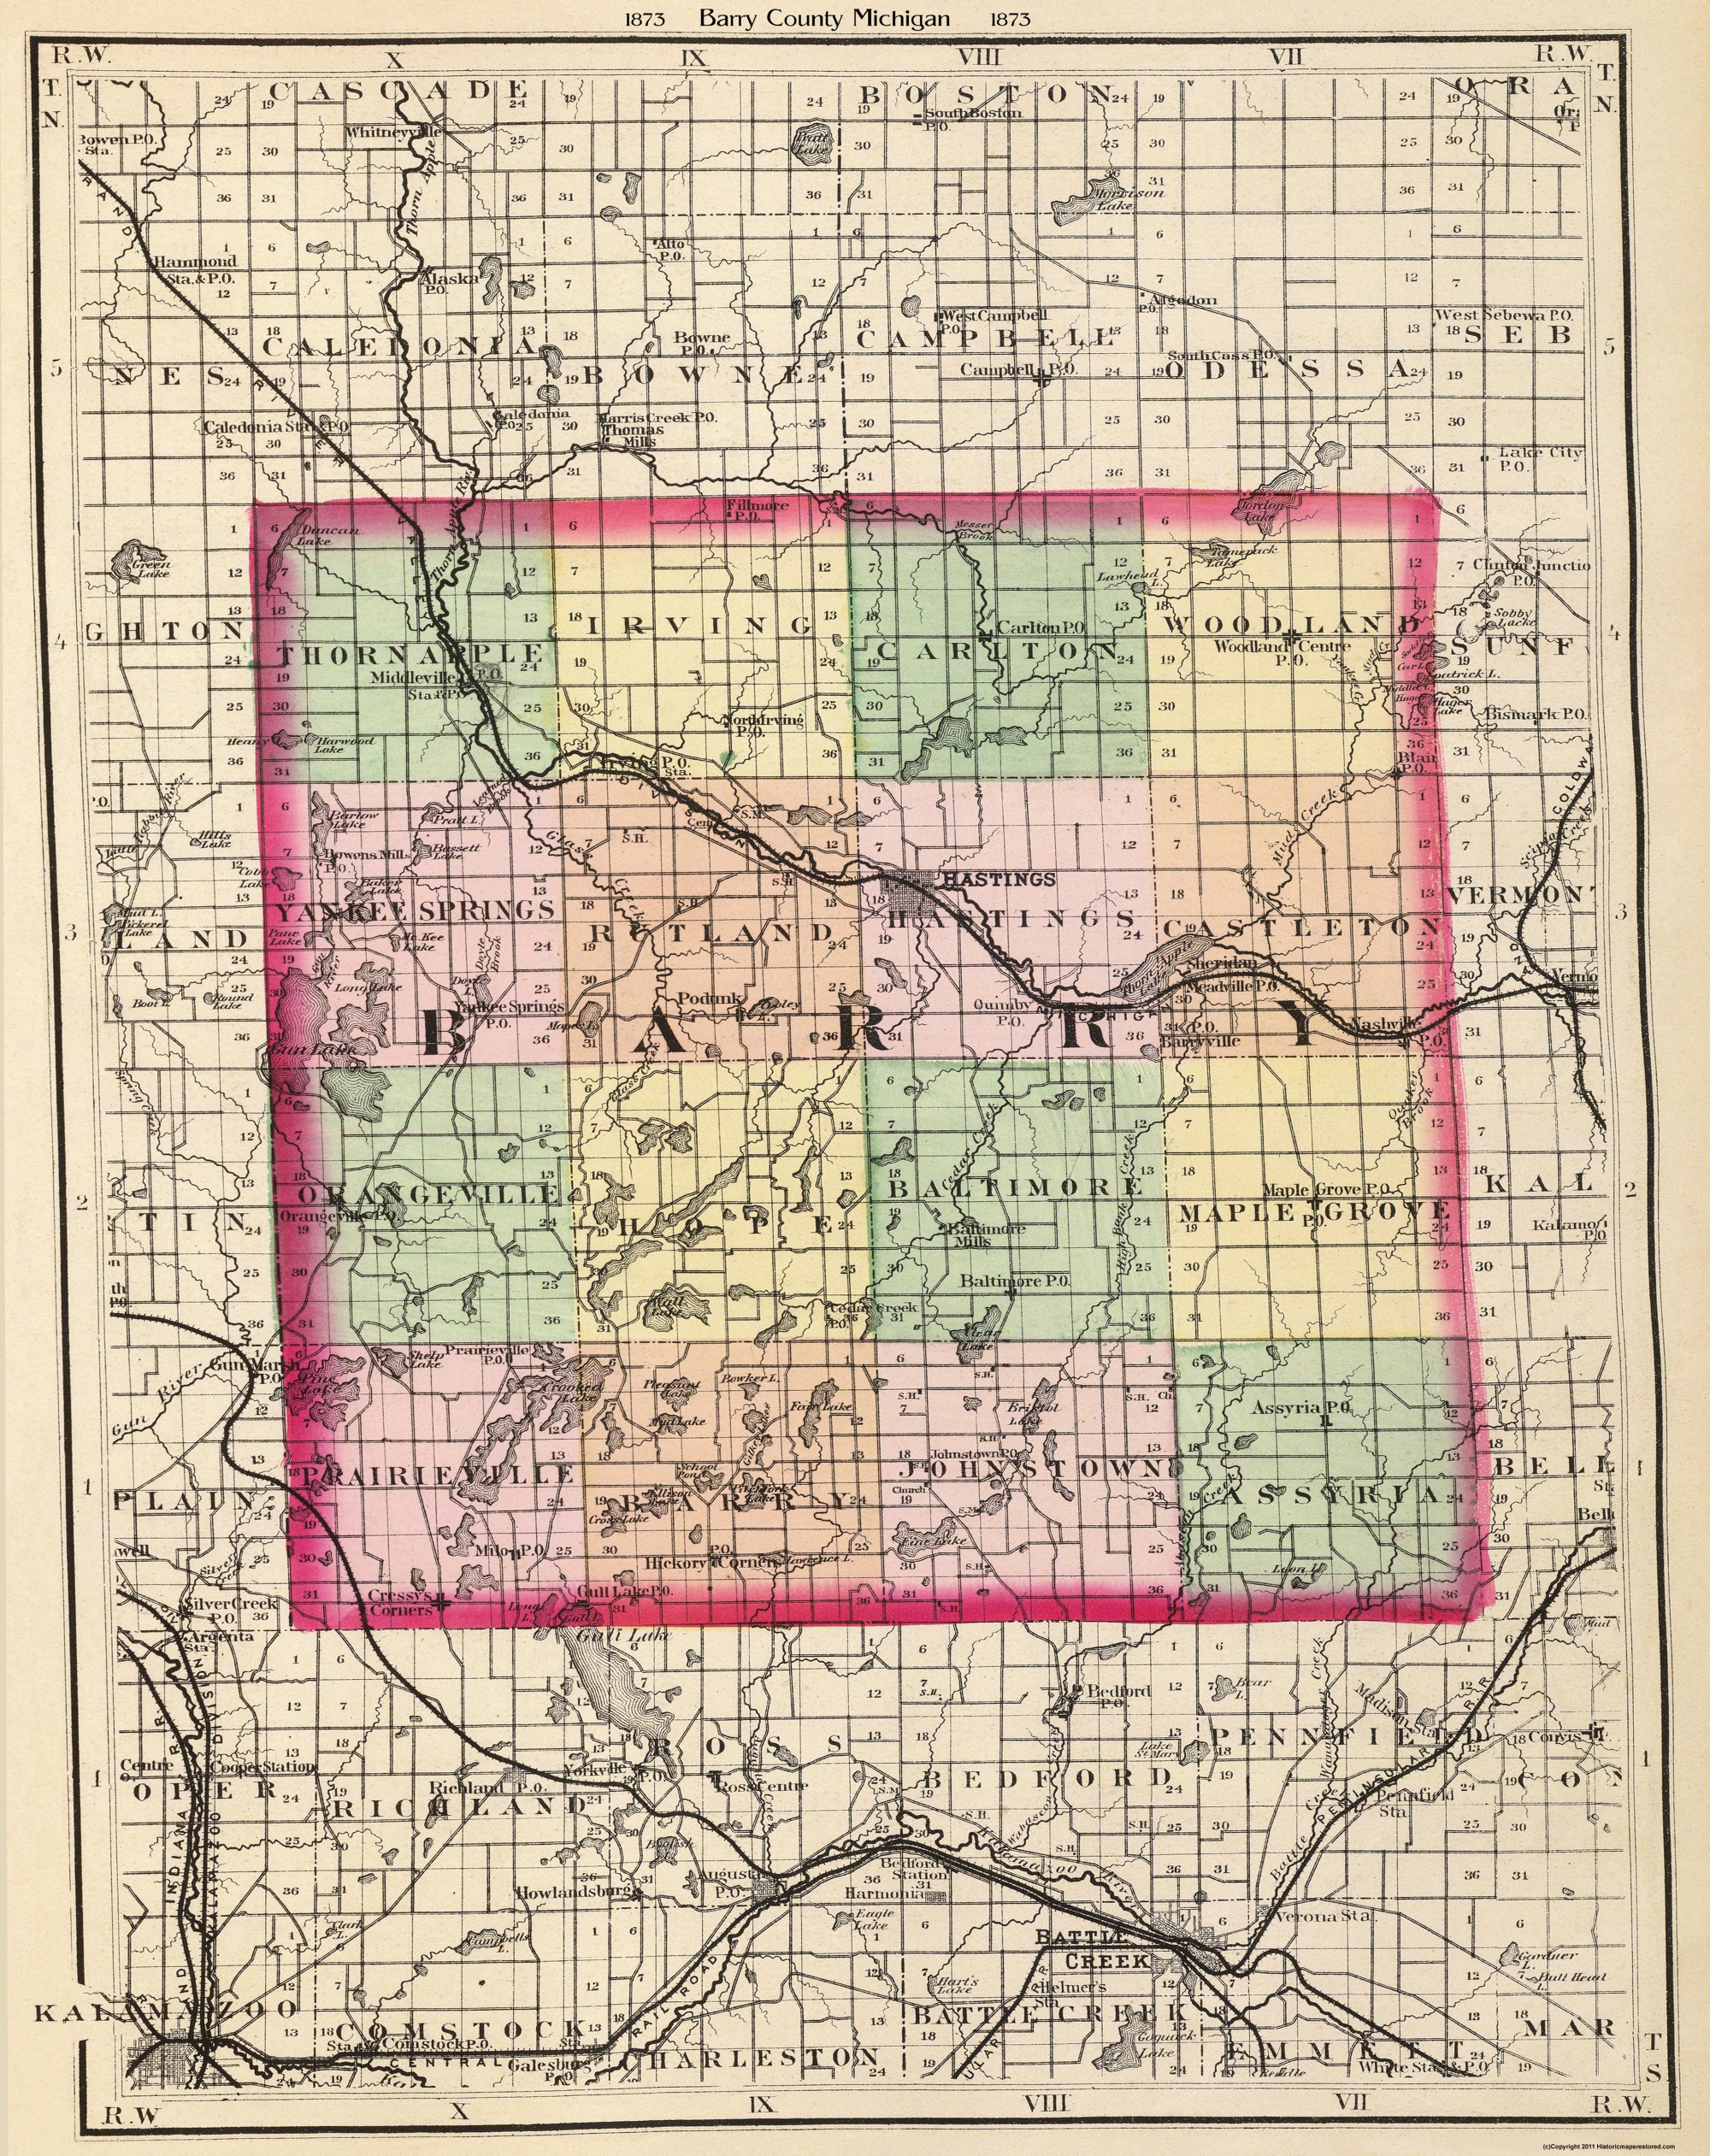 Old County Map Barry Michigan 1873